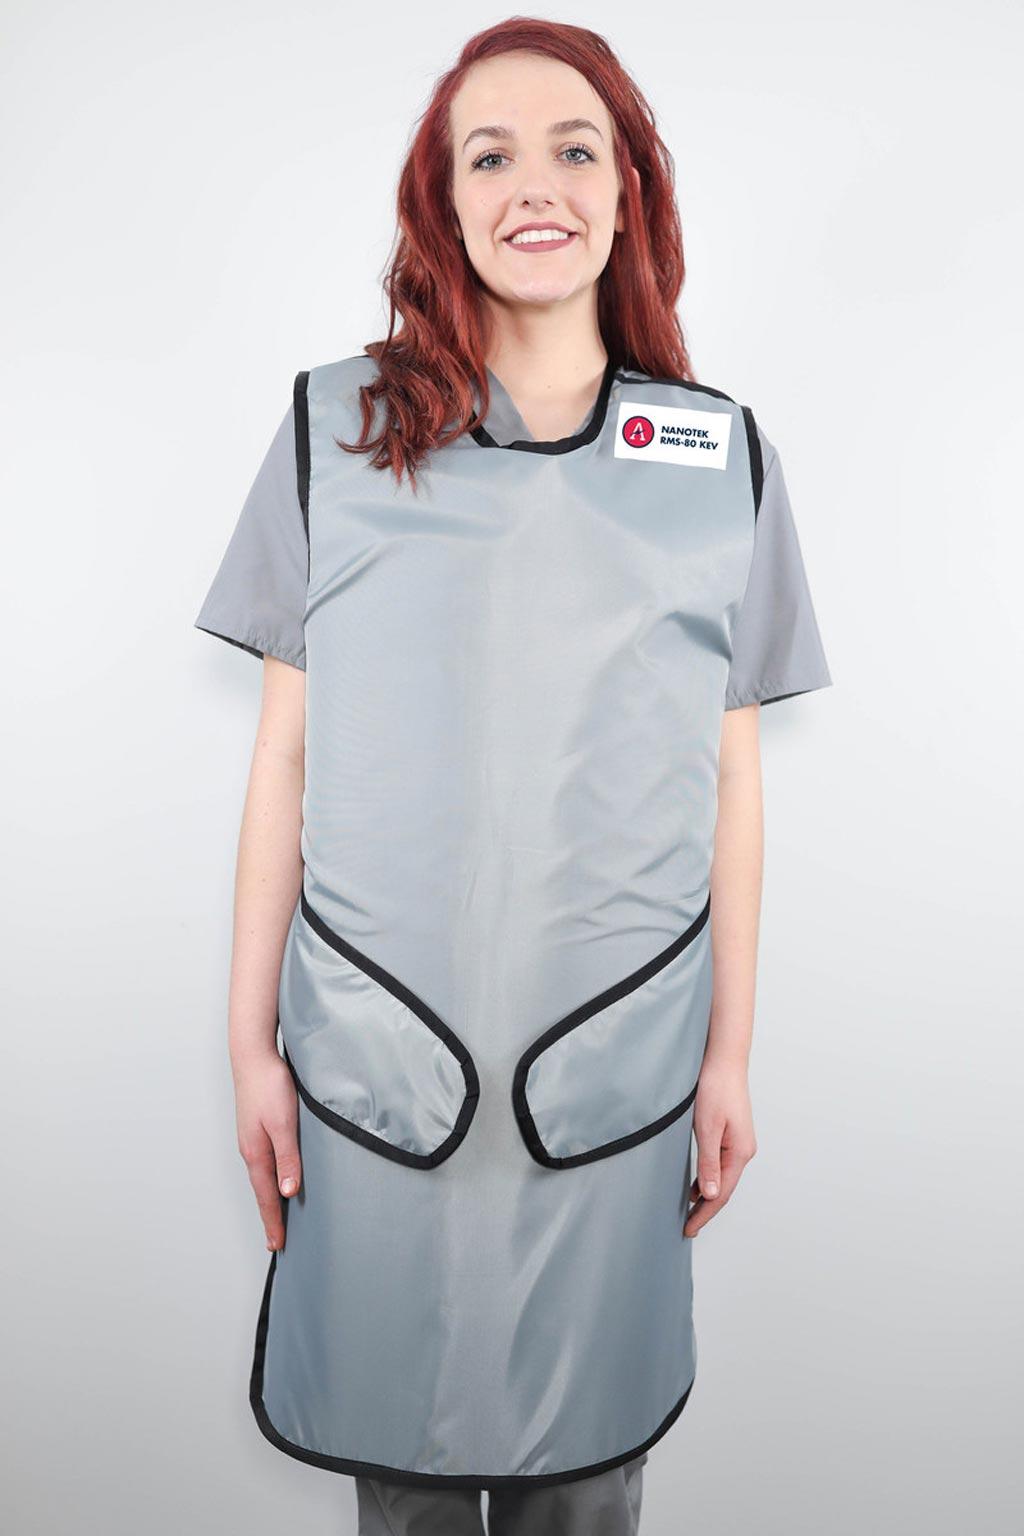 Image: The NanoTek x-ray apron uses polymers instead of lead (Photo courtesy of Artemis Shielding).